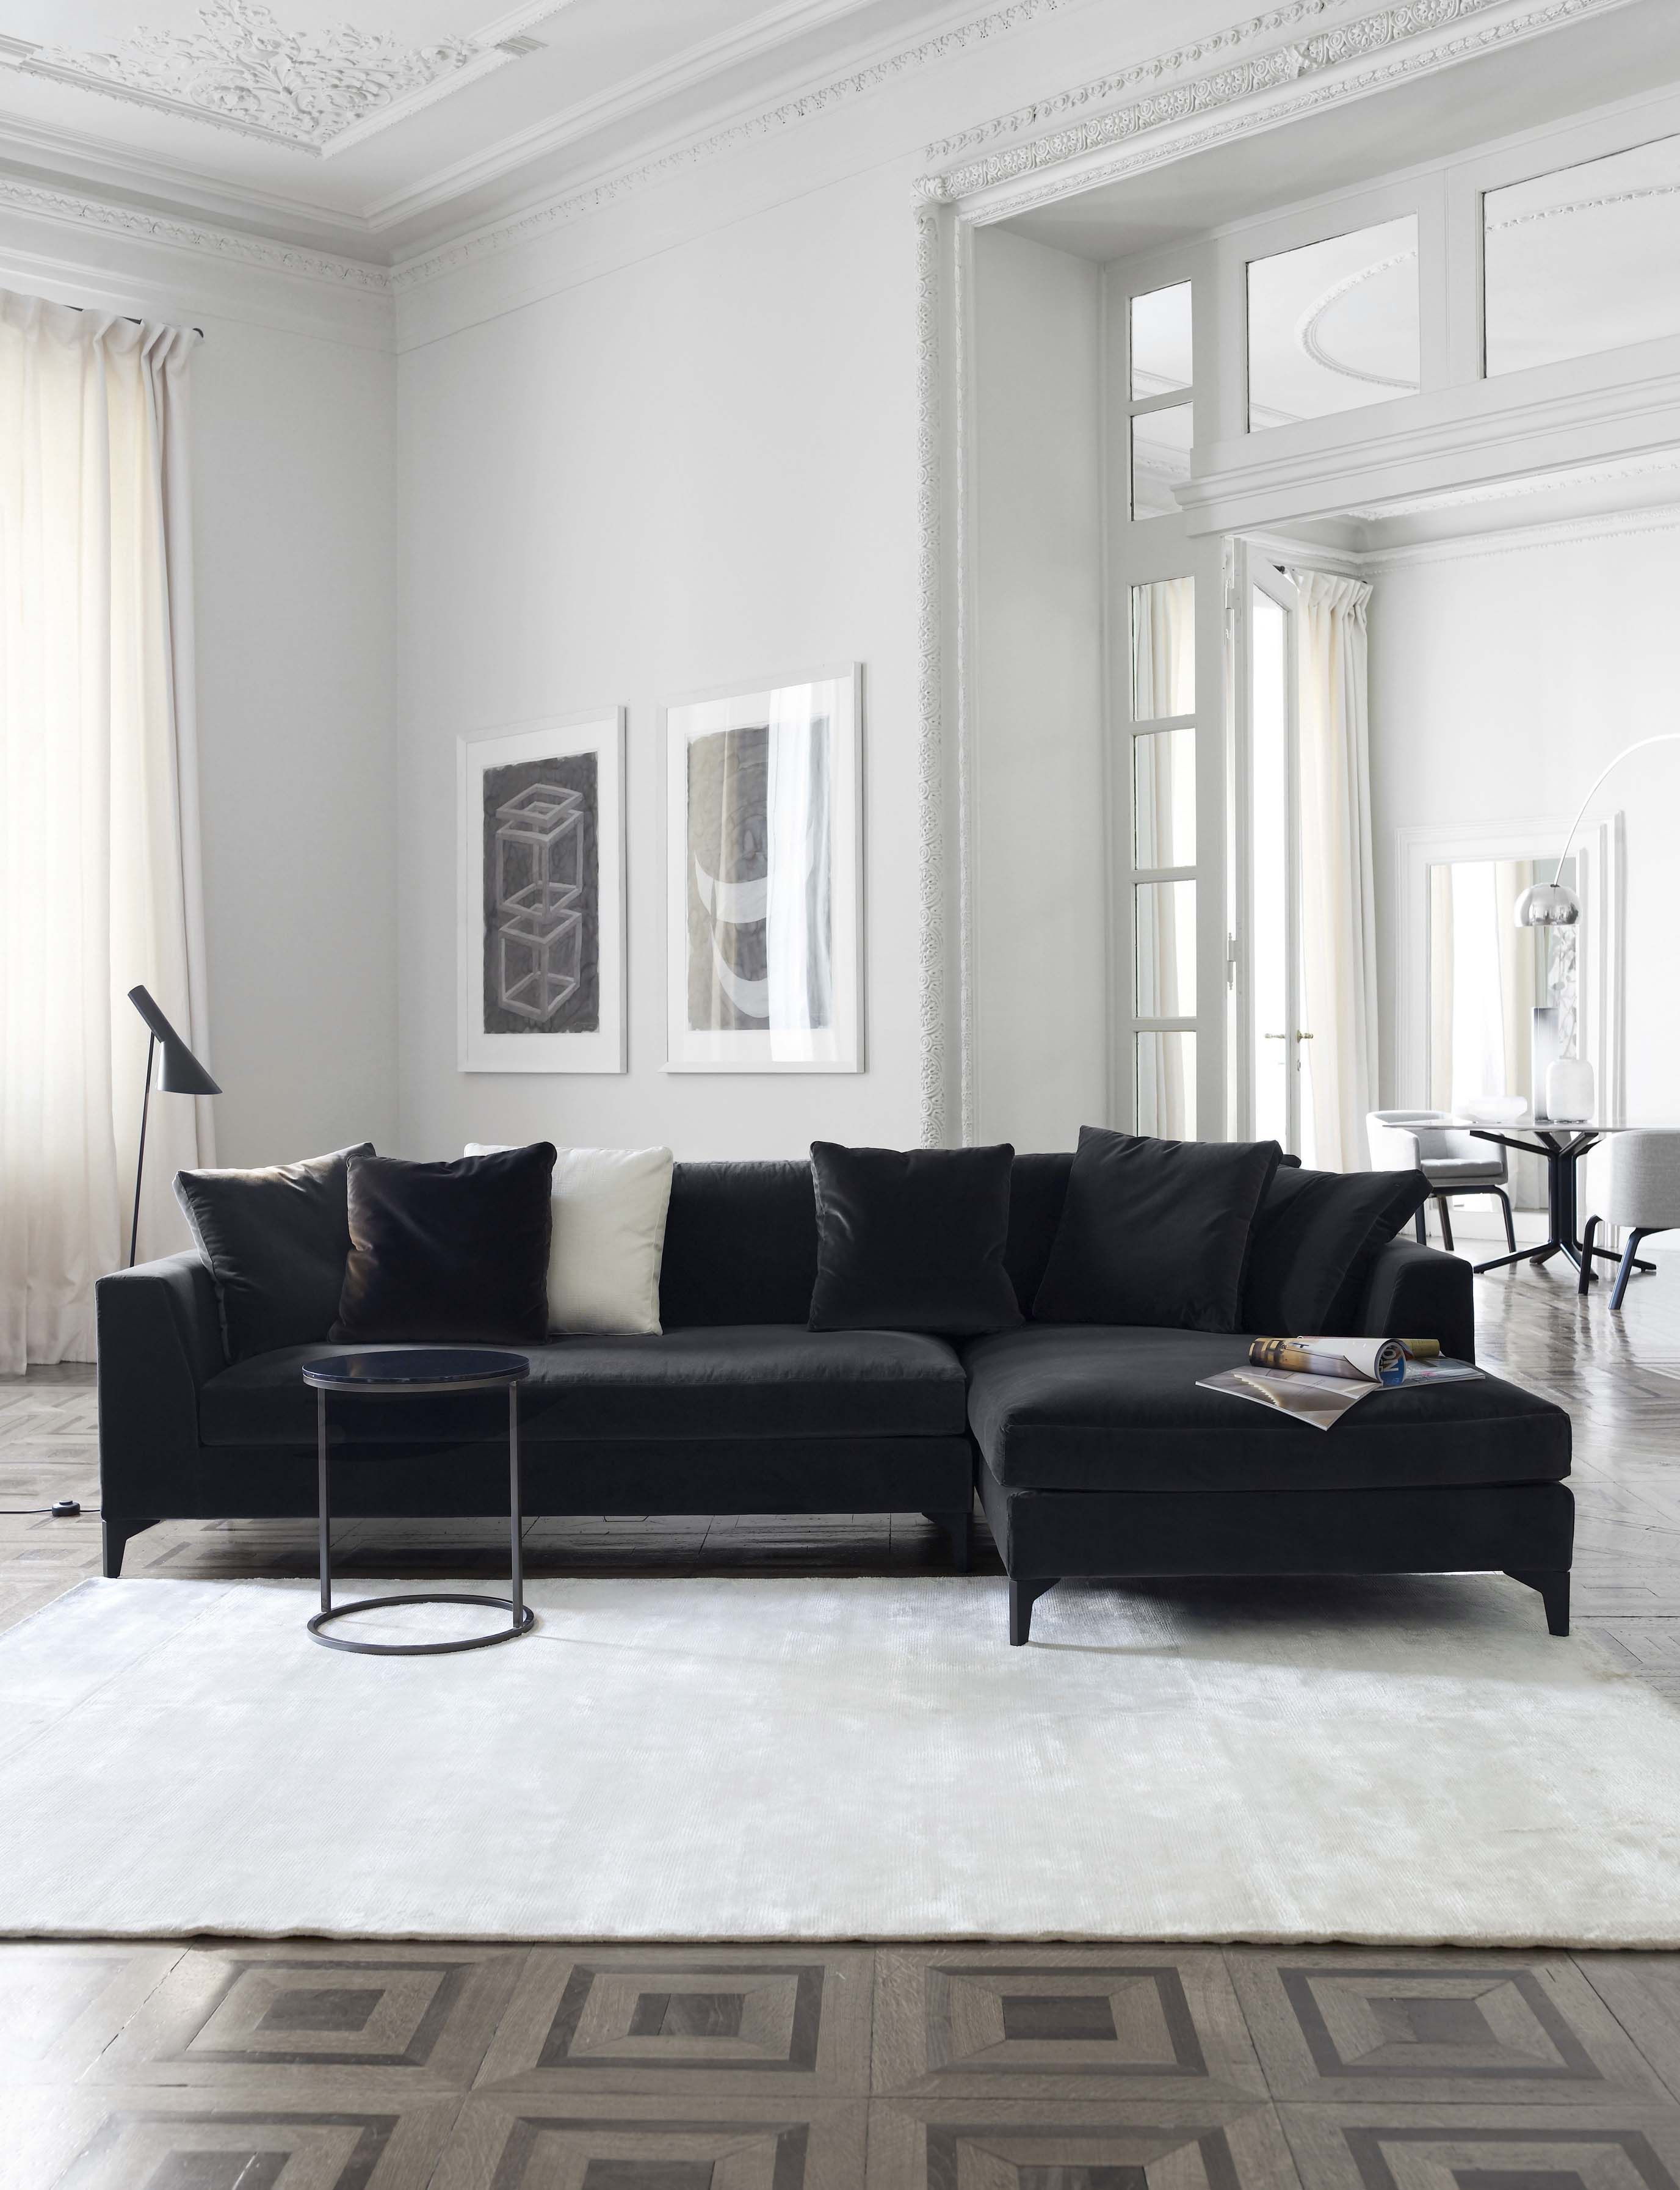 Meridiani i lewis up modular sofa i peck low table i lalit - Black accessories for living room ...